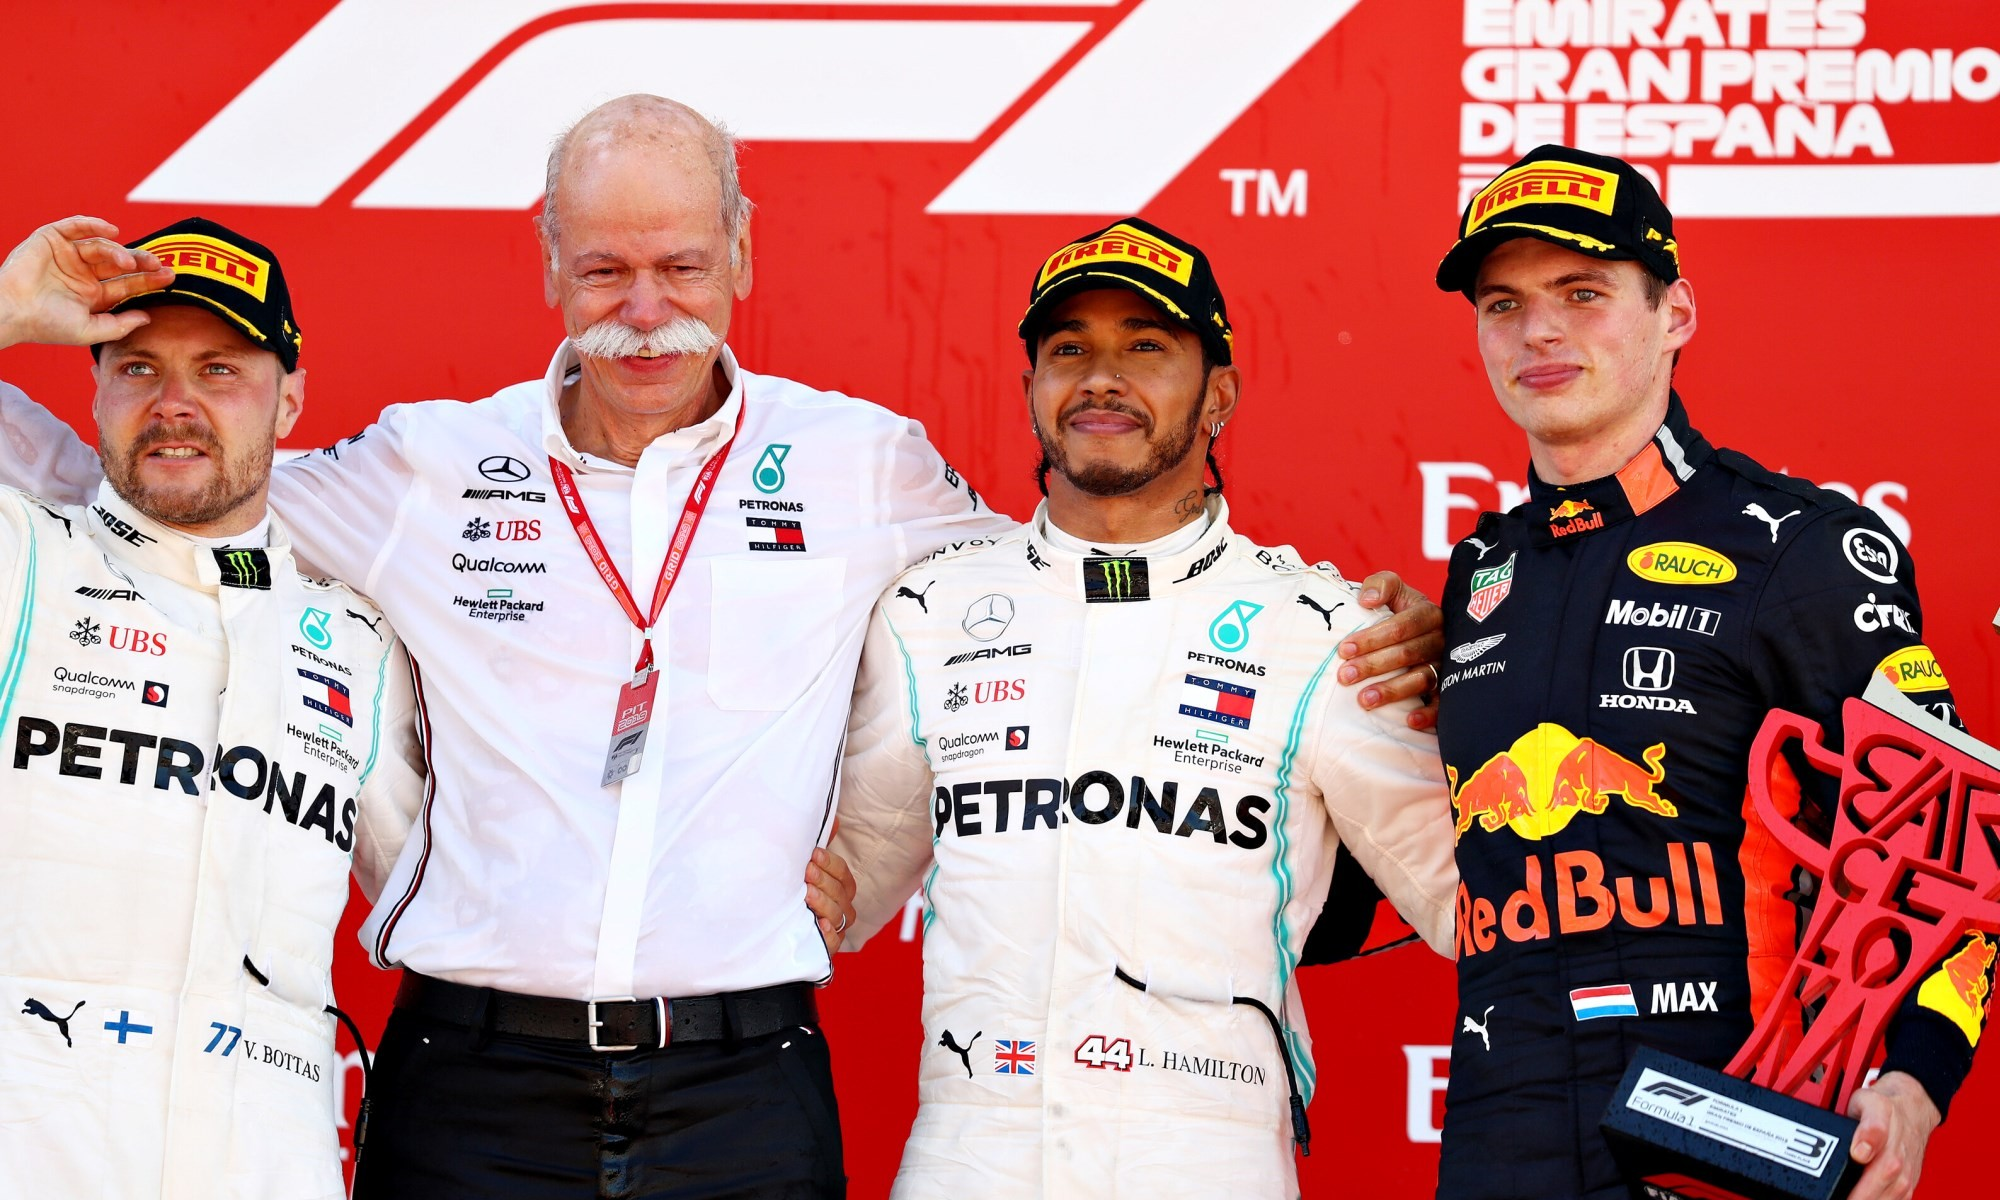 The podium places with the head of Mercedes-Benz